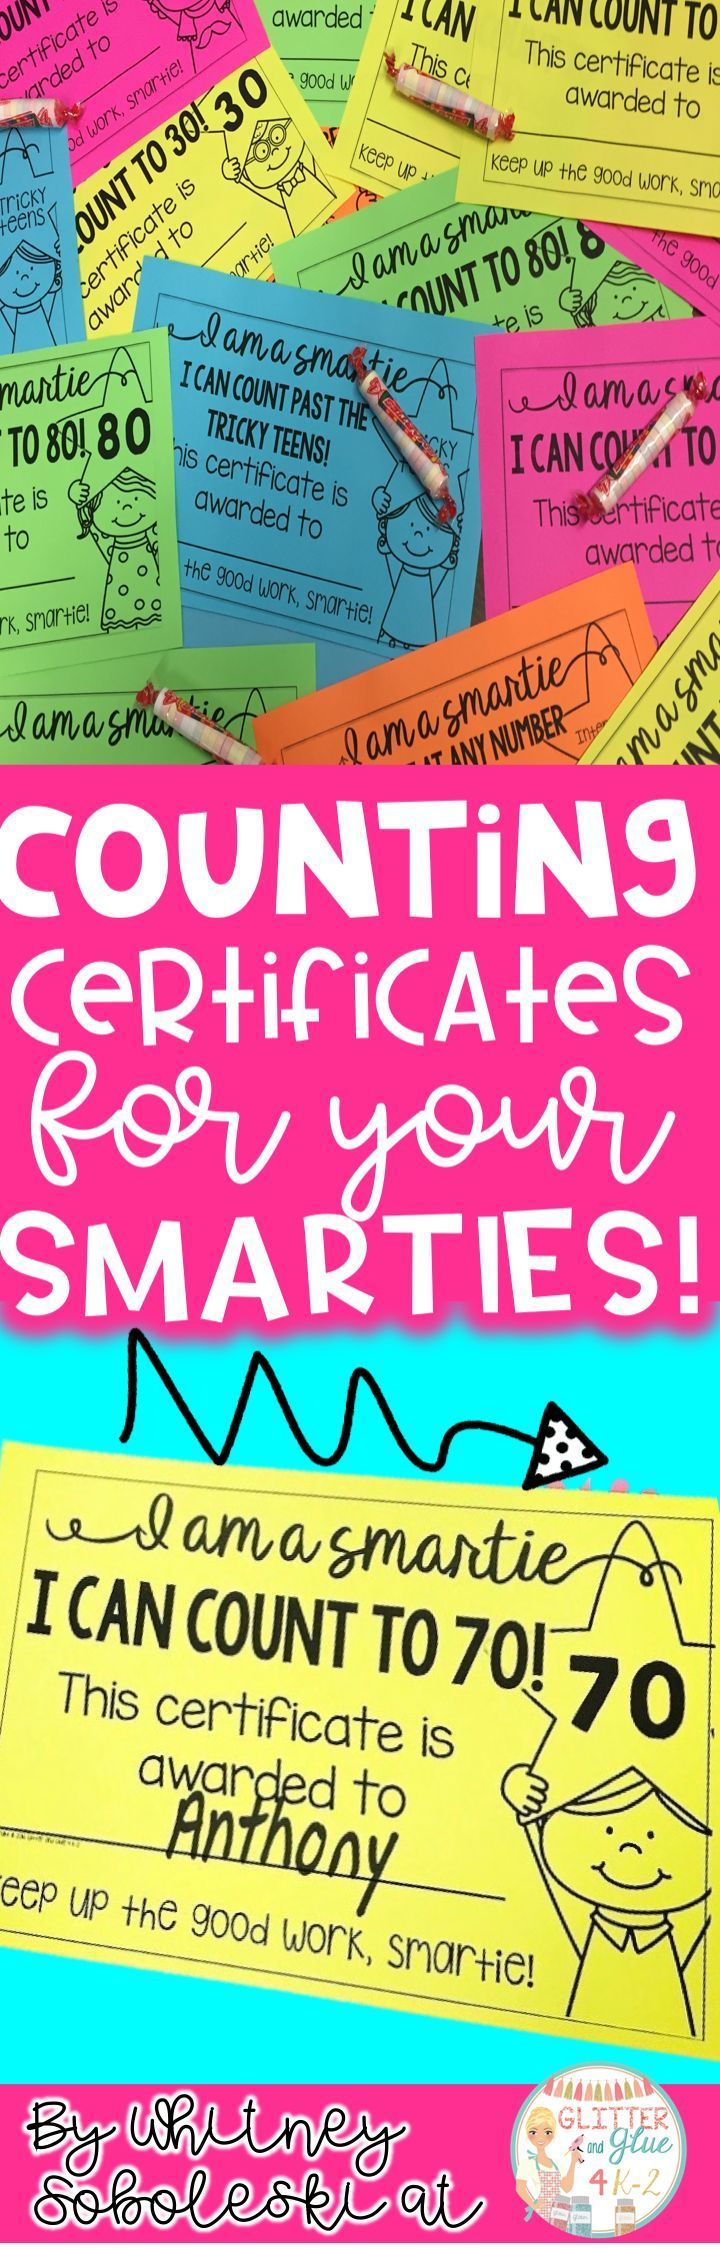 Motivate your little ones to reach oral counting goals with these certificates! Includes certificates up to 120 and for skip counting! Keywords: oral counting, kindergarten, intervention, special education, special education teacher, counting, teaching counting, how to teach counting, student awards, student certificates, Astrobrights, math, counting to 100, counting to 120 #mathforkindergarten